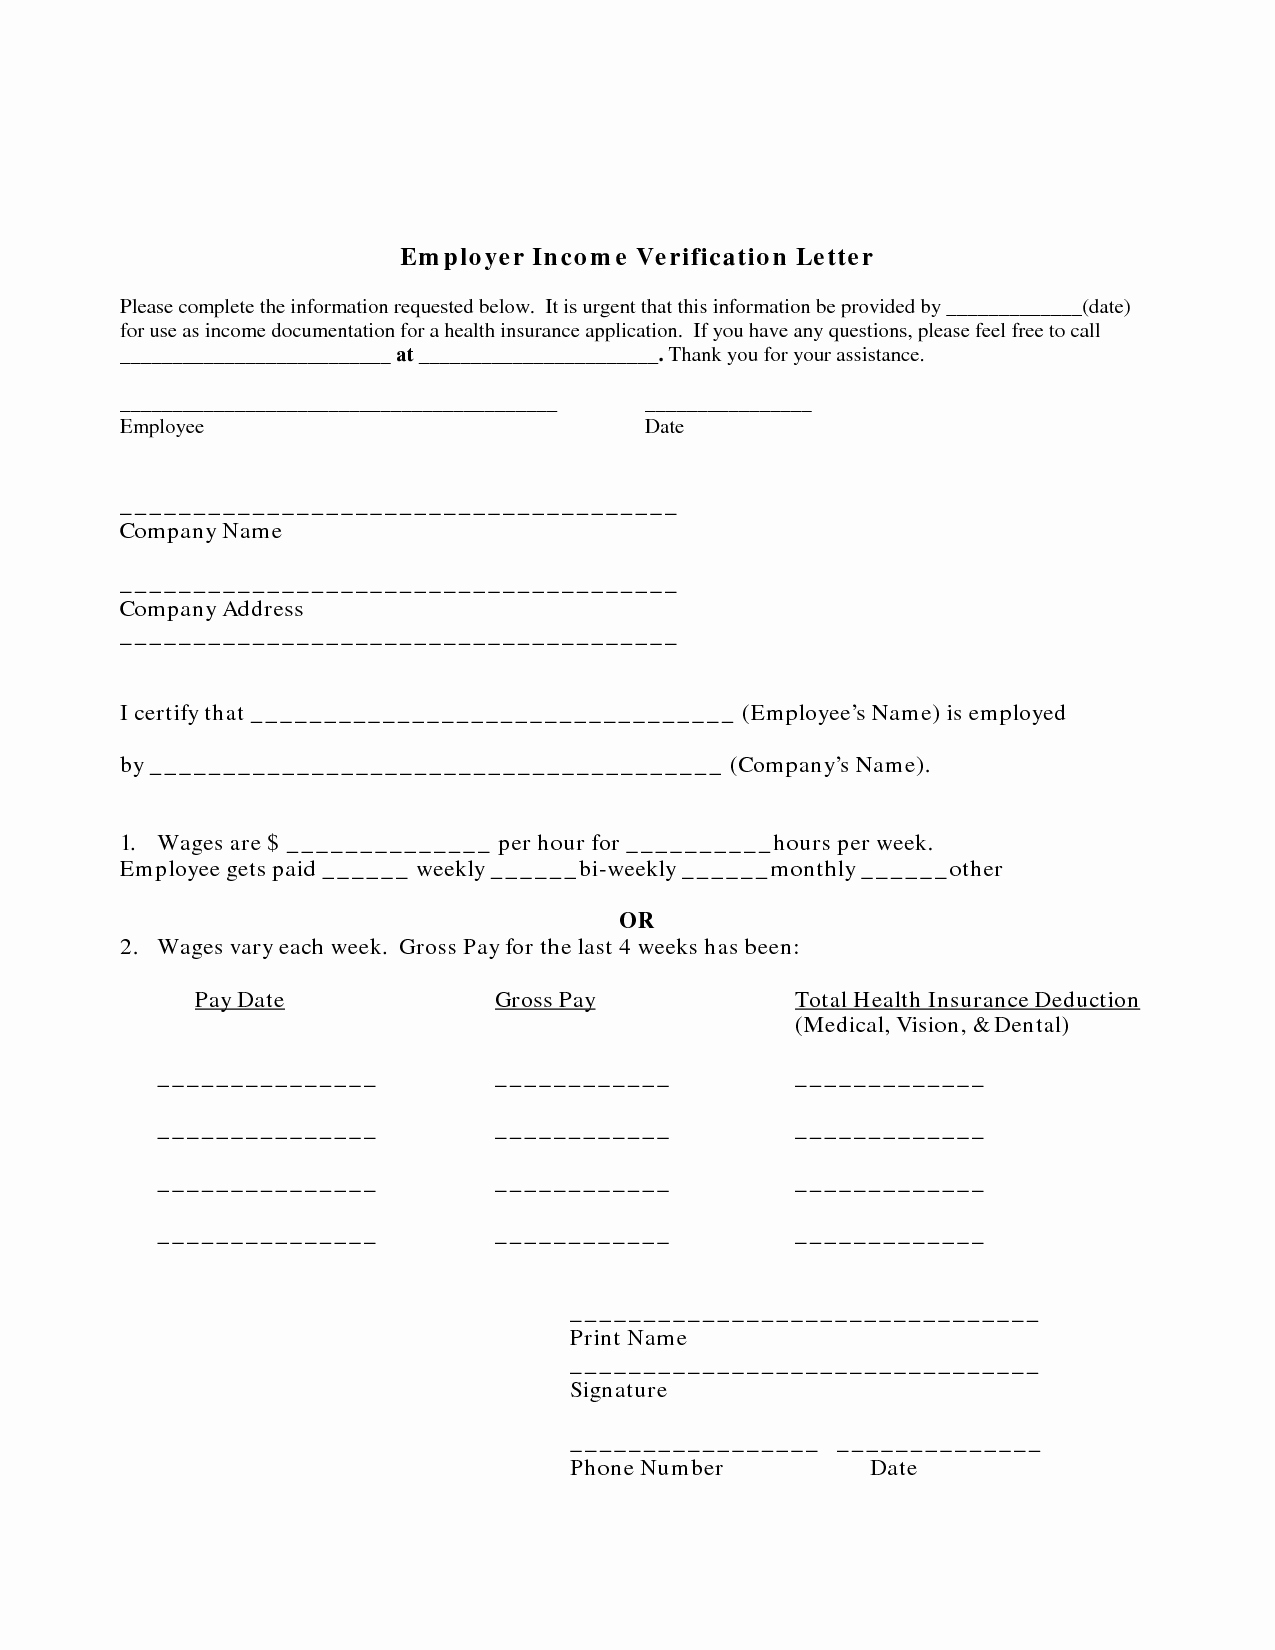 Income Verification form Template Luxury In E Verification Letter Free Printable Documents